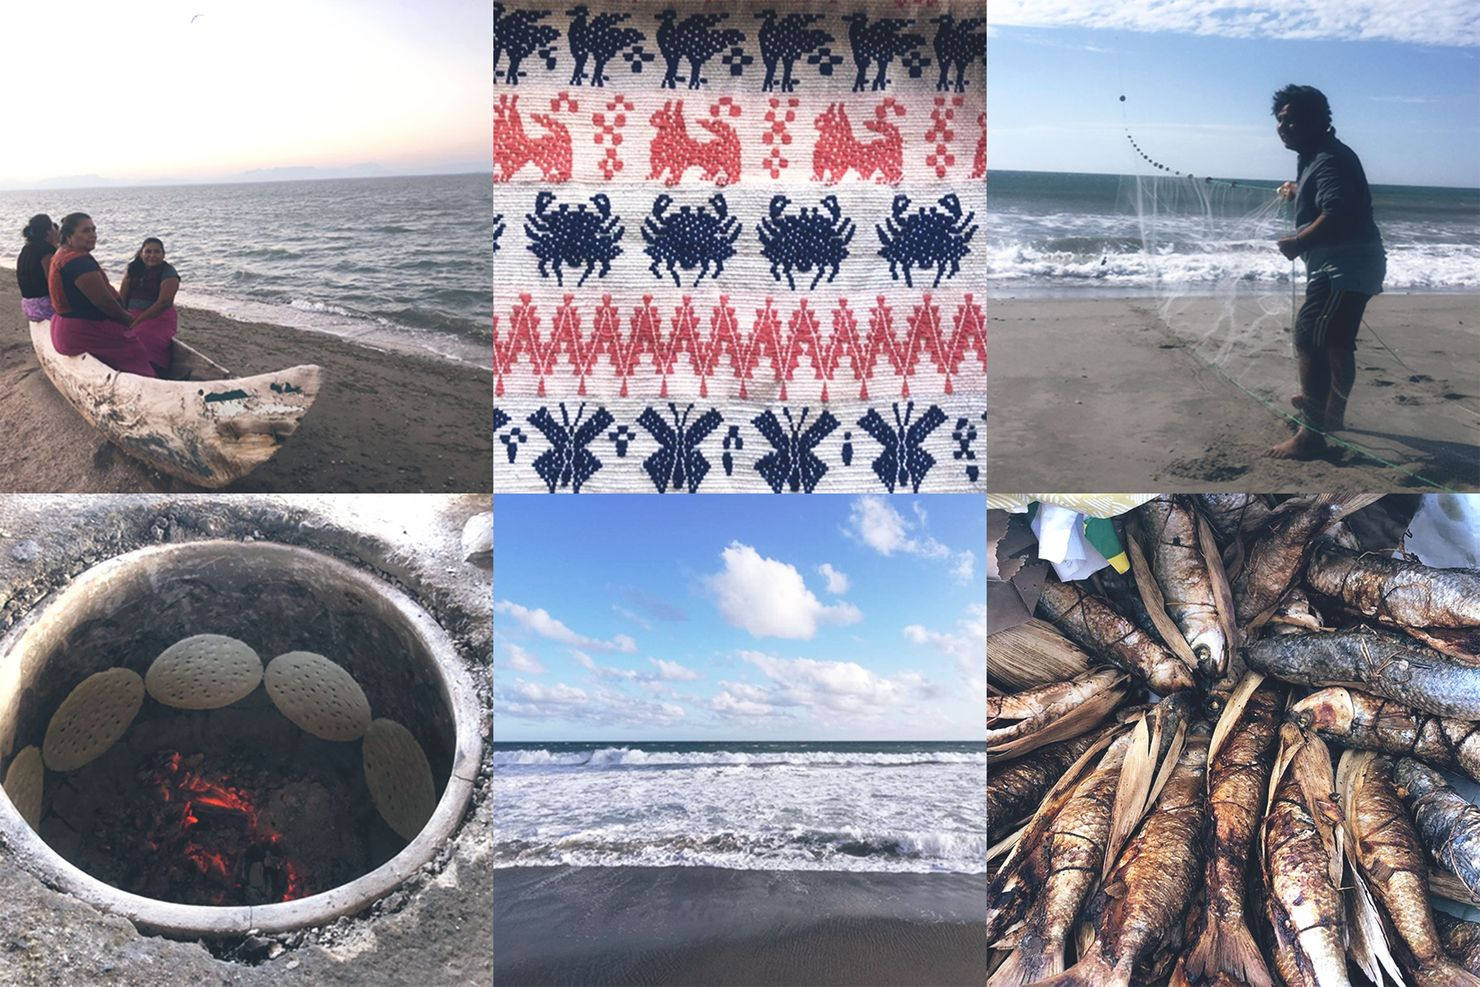 a collage of 6 images showing Ikoot fisherwomen on a canoe at the dead sea, textiles, a fisherman and his kite/net, totopos, the living sea, and baked stuffed fish